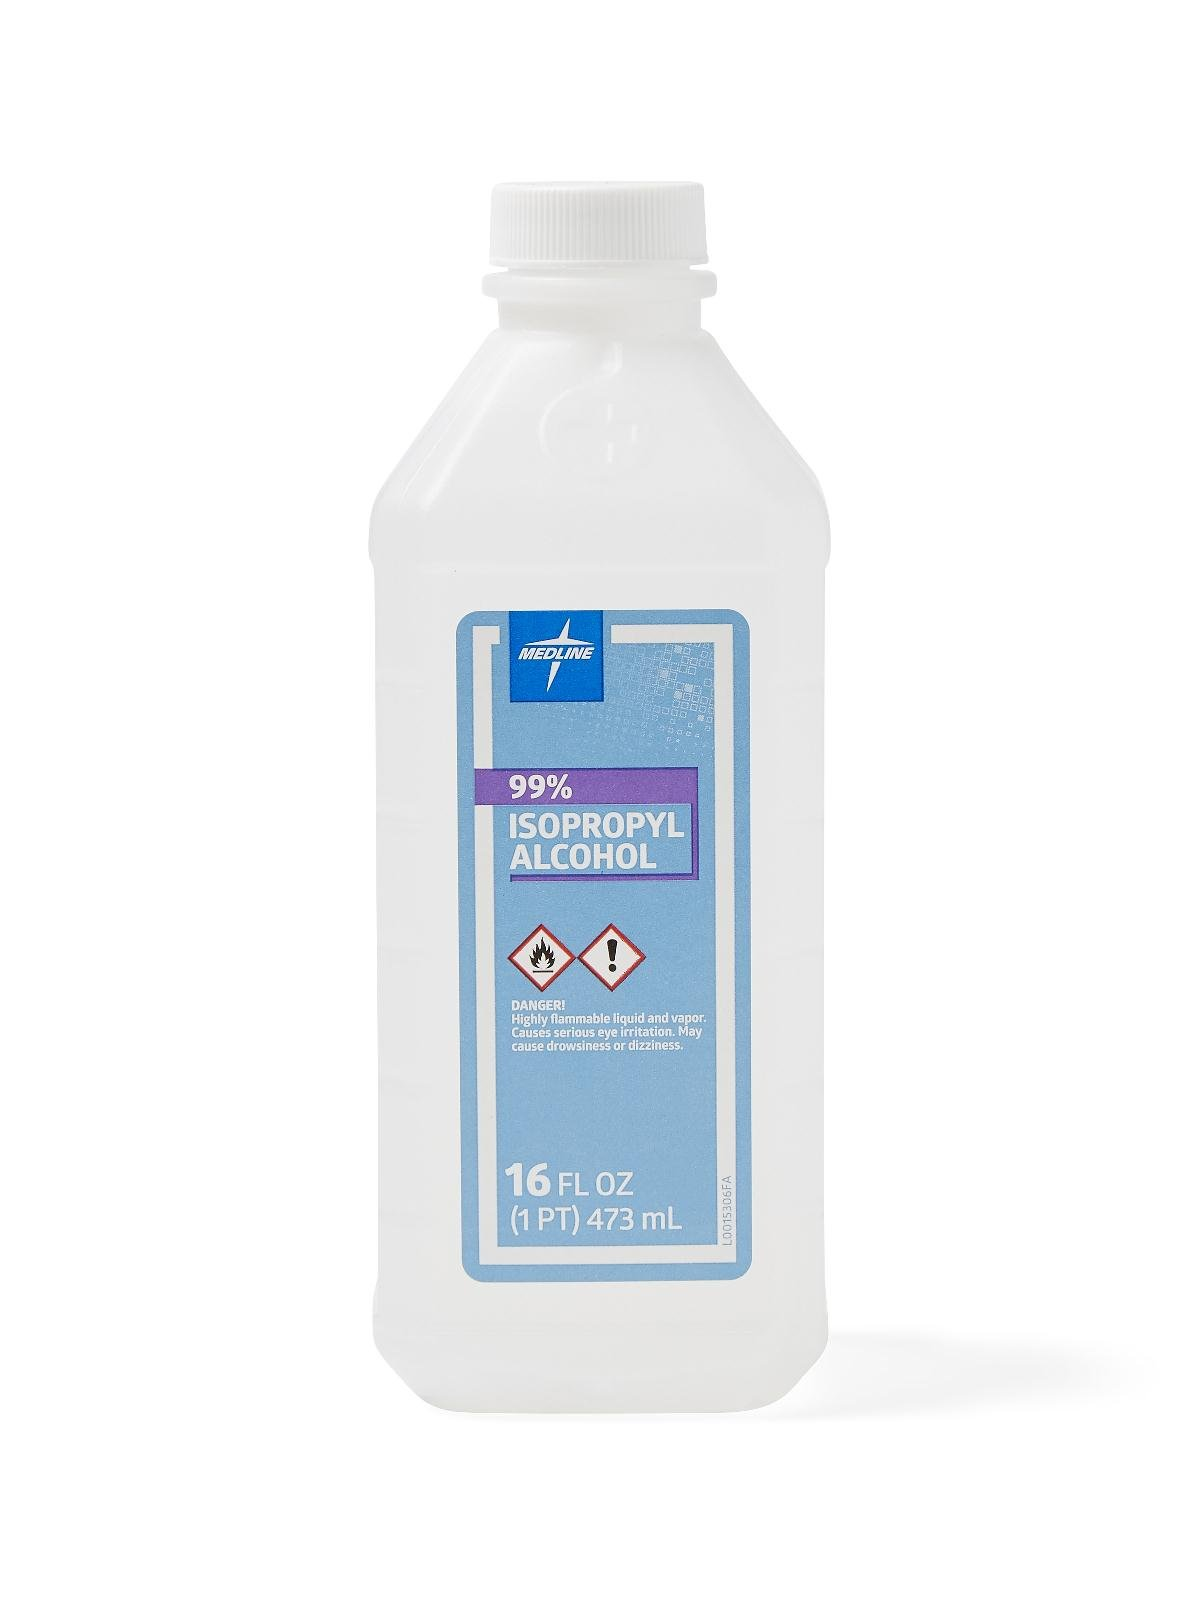 Medline MDS098013 Isopropyl Alcohol Antiseptic Solution, 99% Alcohol, 16 Ounces, (Case of 12) by Medline